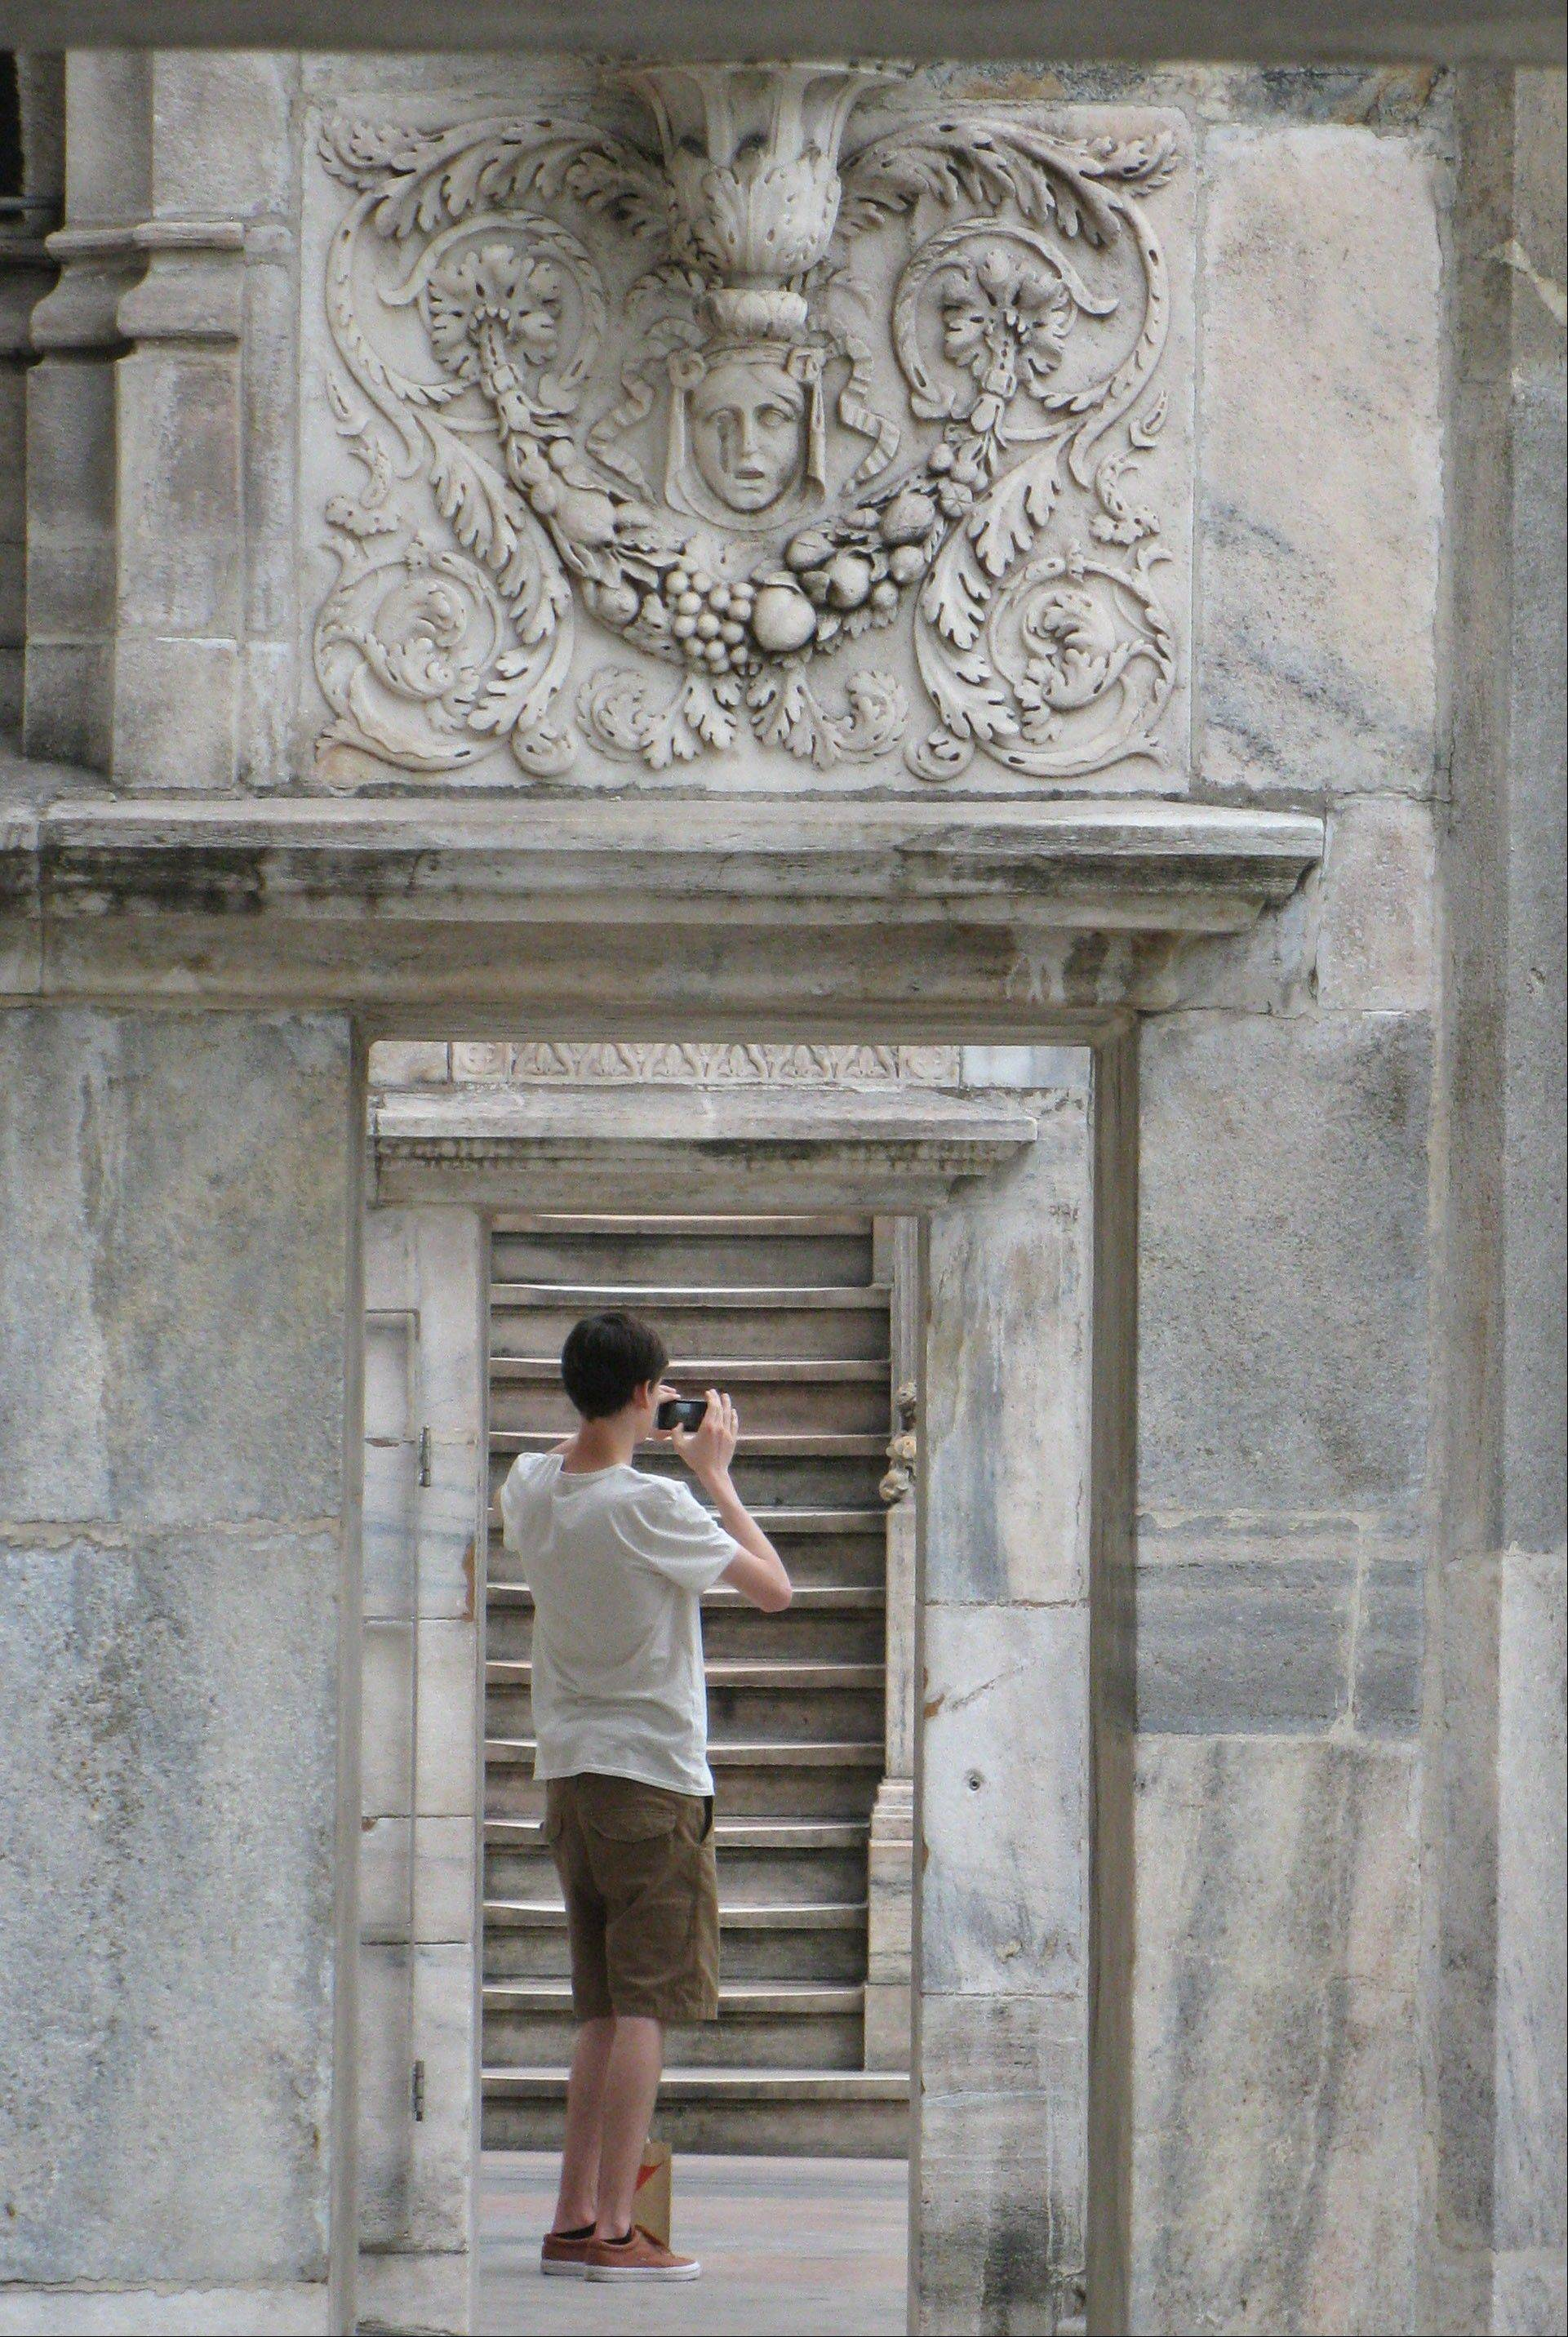 A man takes a picture on the rooftop of the Milan cathedral.